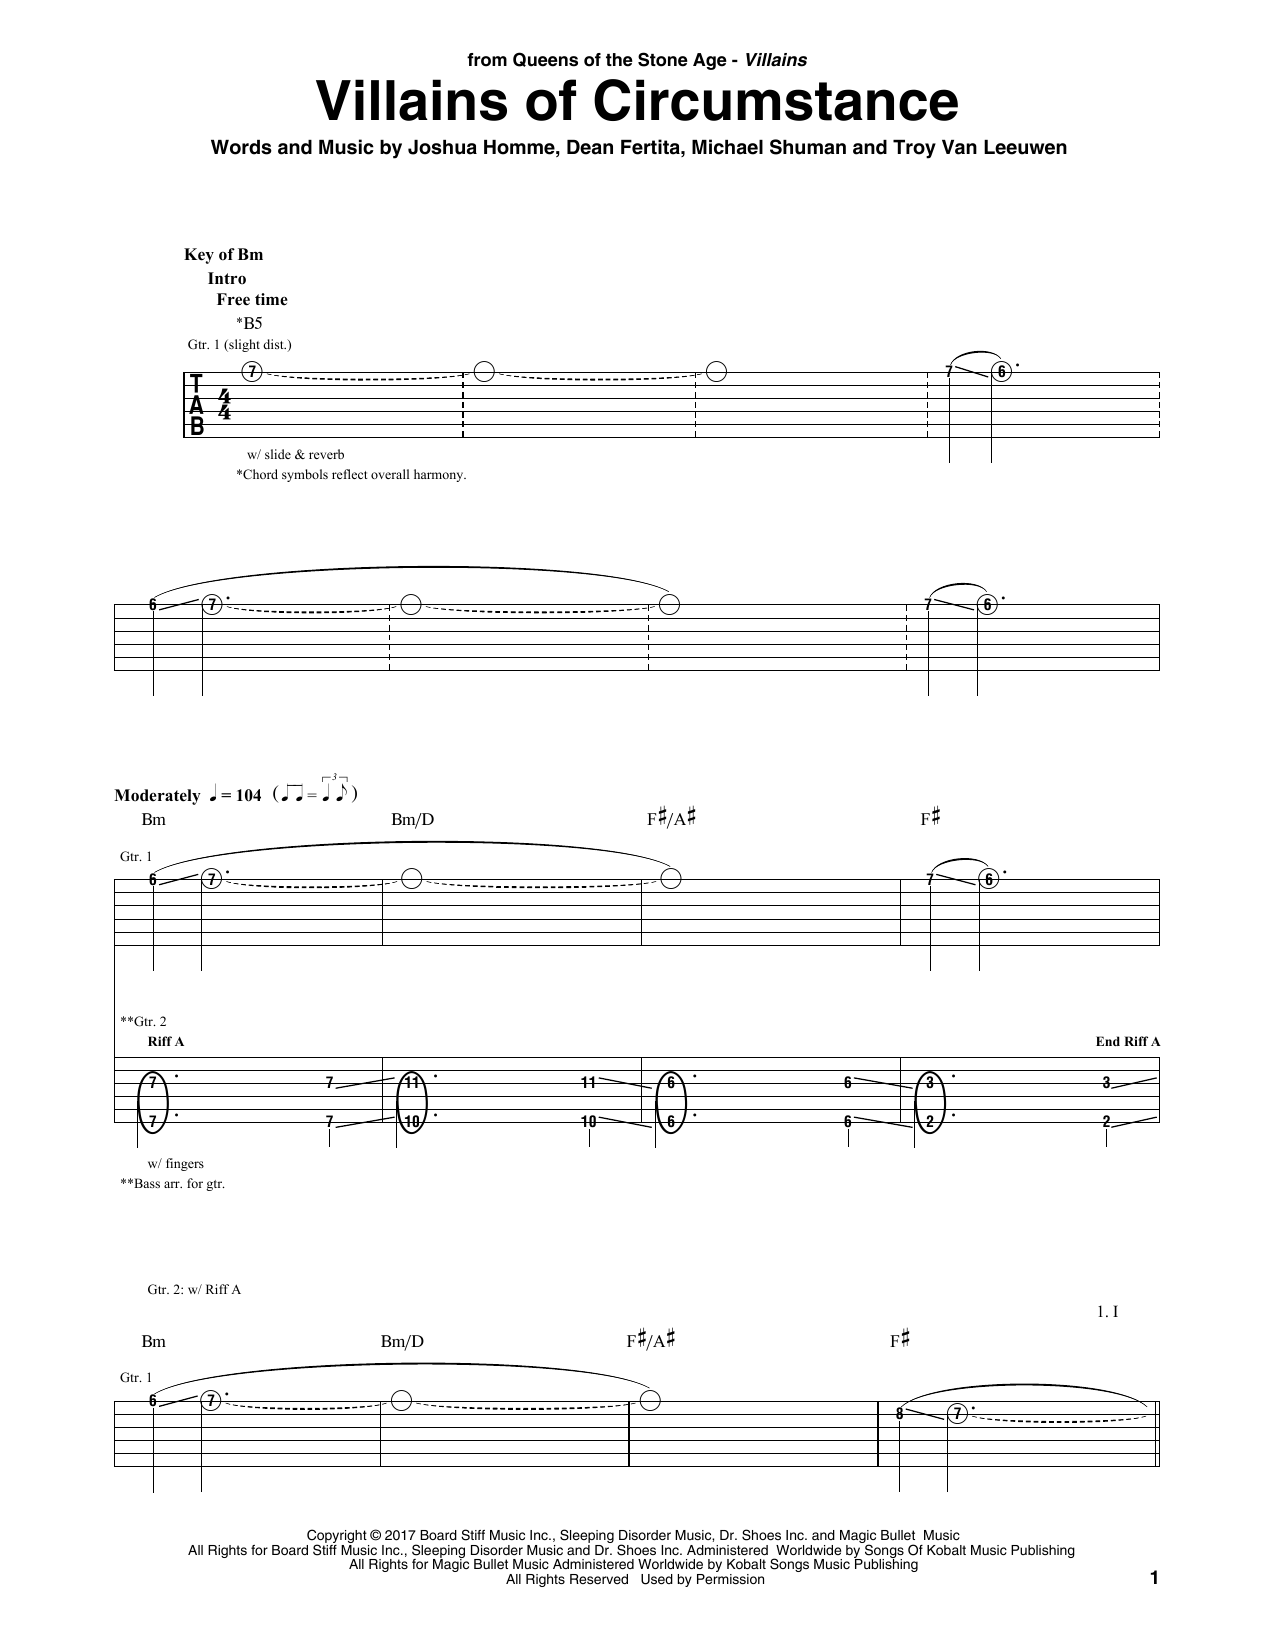 Queens Of The Stone Age Villains Of Circumstance sheet music notes and chords. Download Printable PDF.